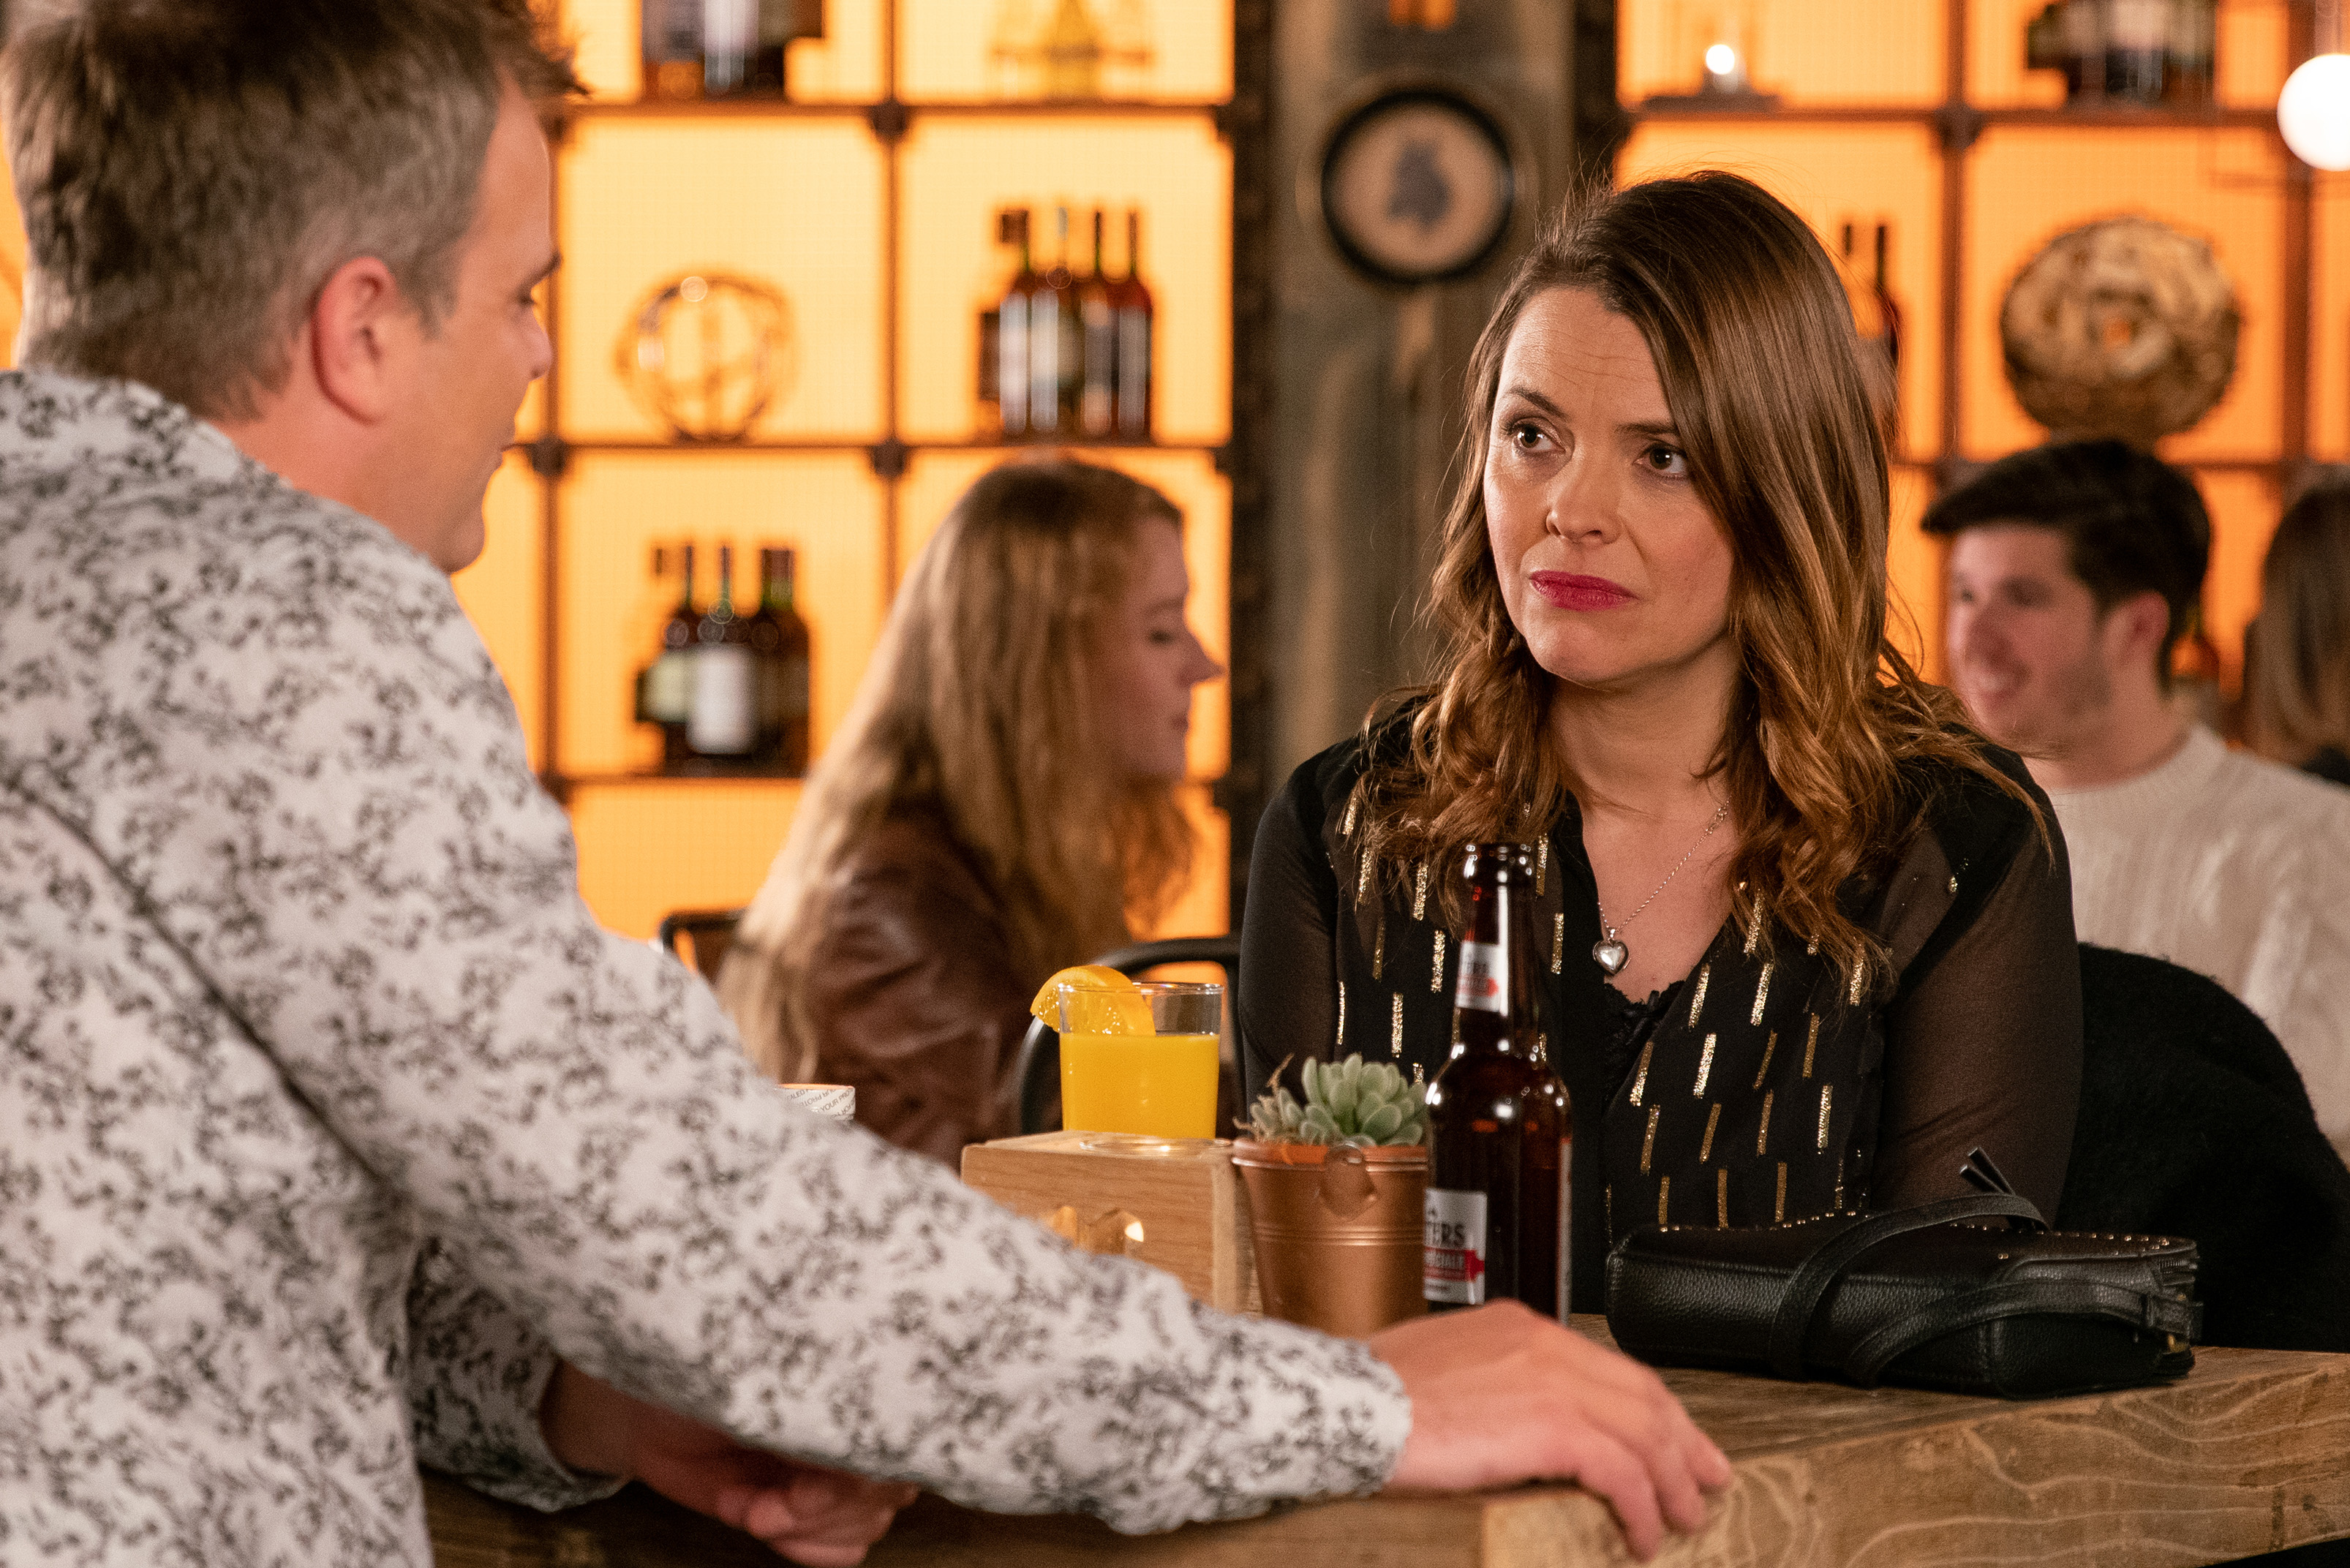 Coronation Street spoilers: Steve and Tracy McDonald to raise pregnant Amy Barlow's baby?